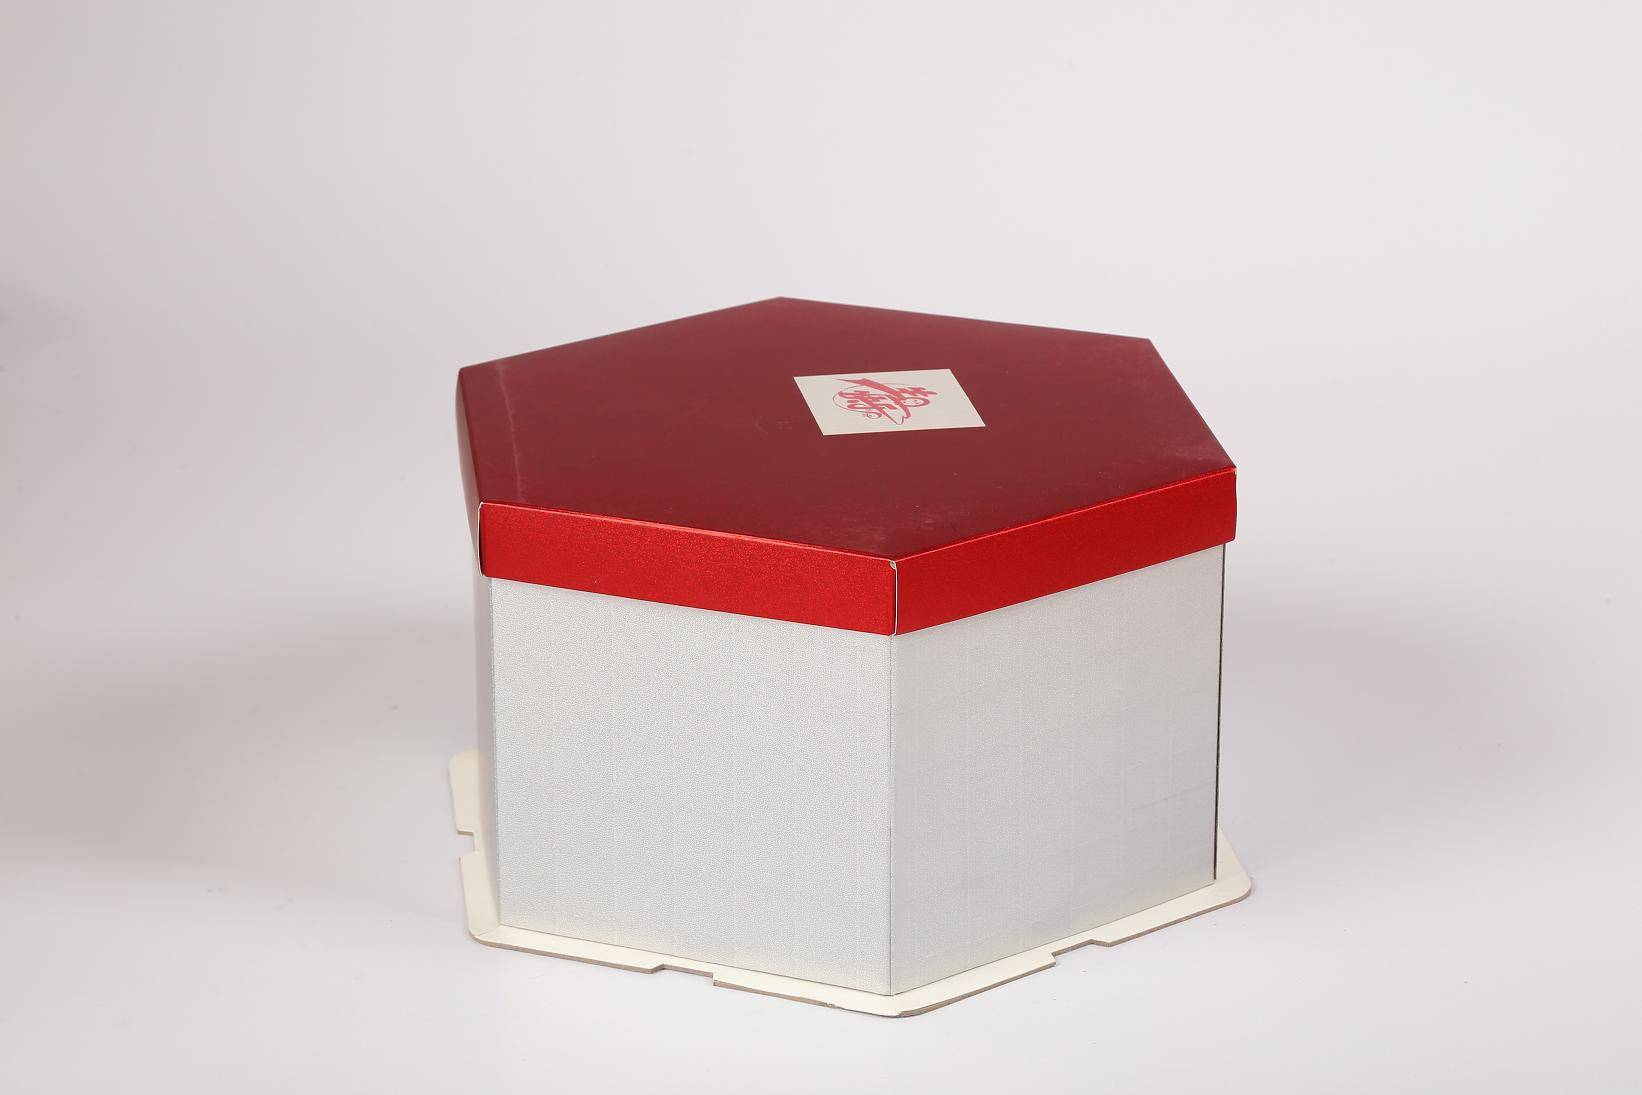 Six-Corner Card Paper Wrapping Boxes